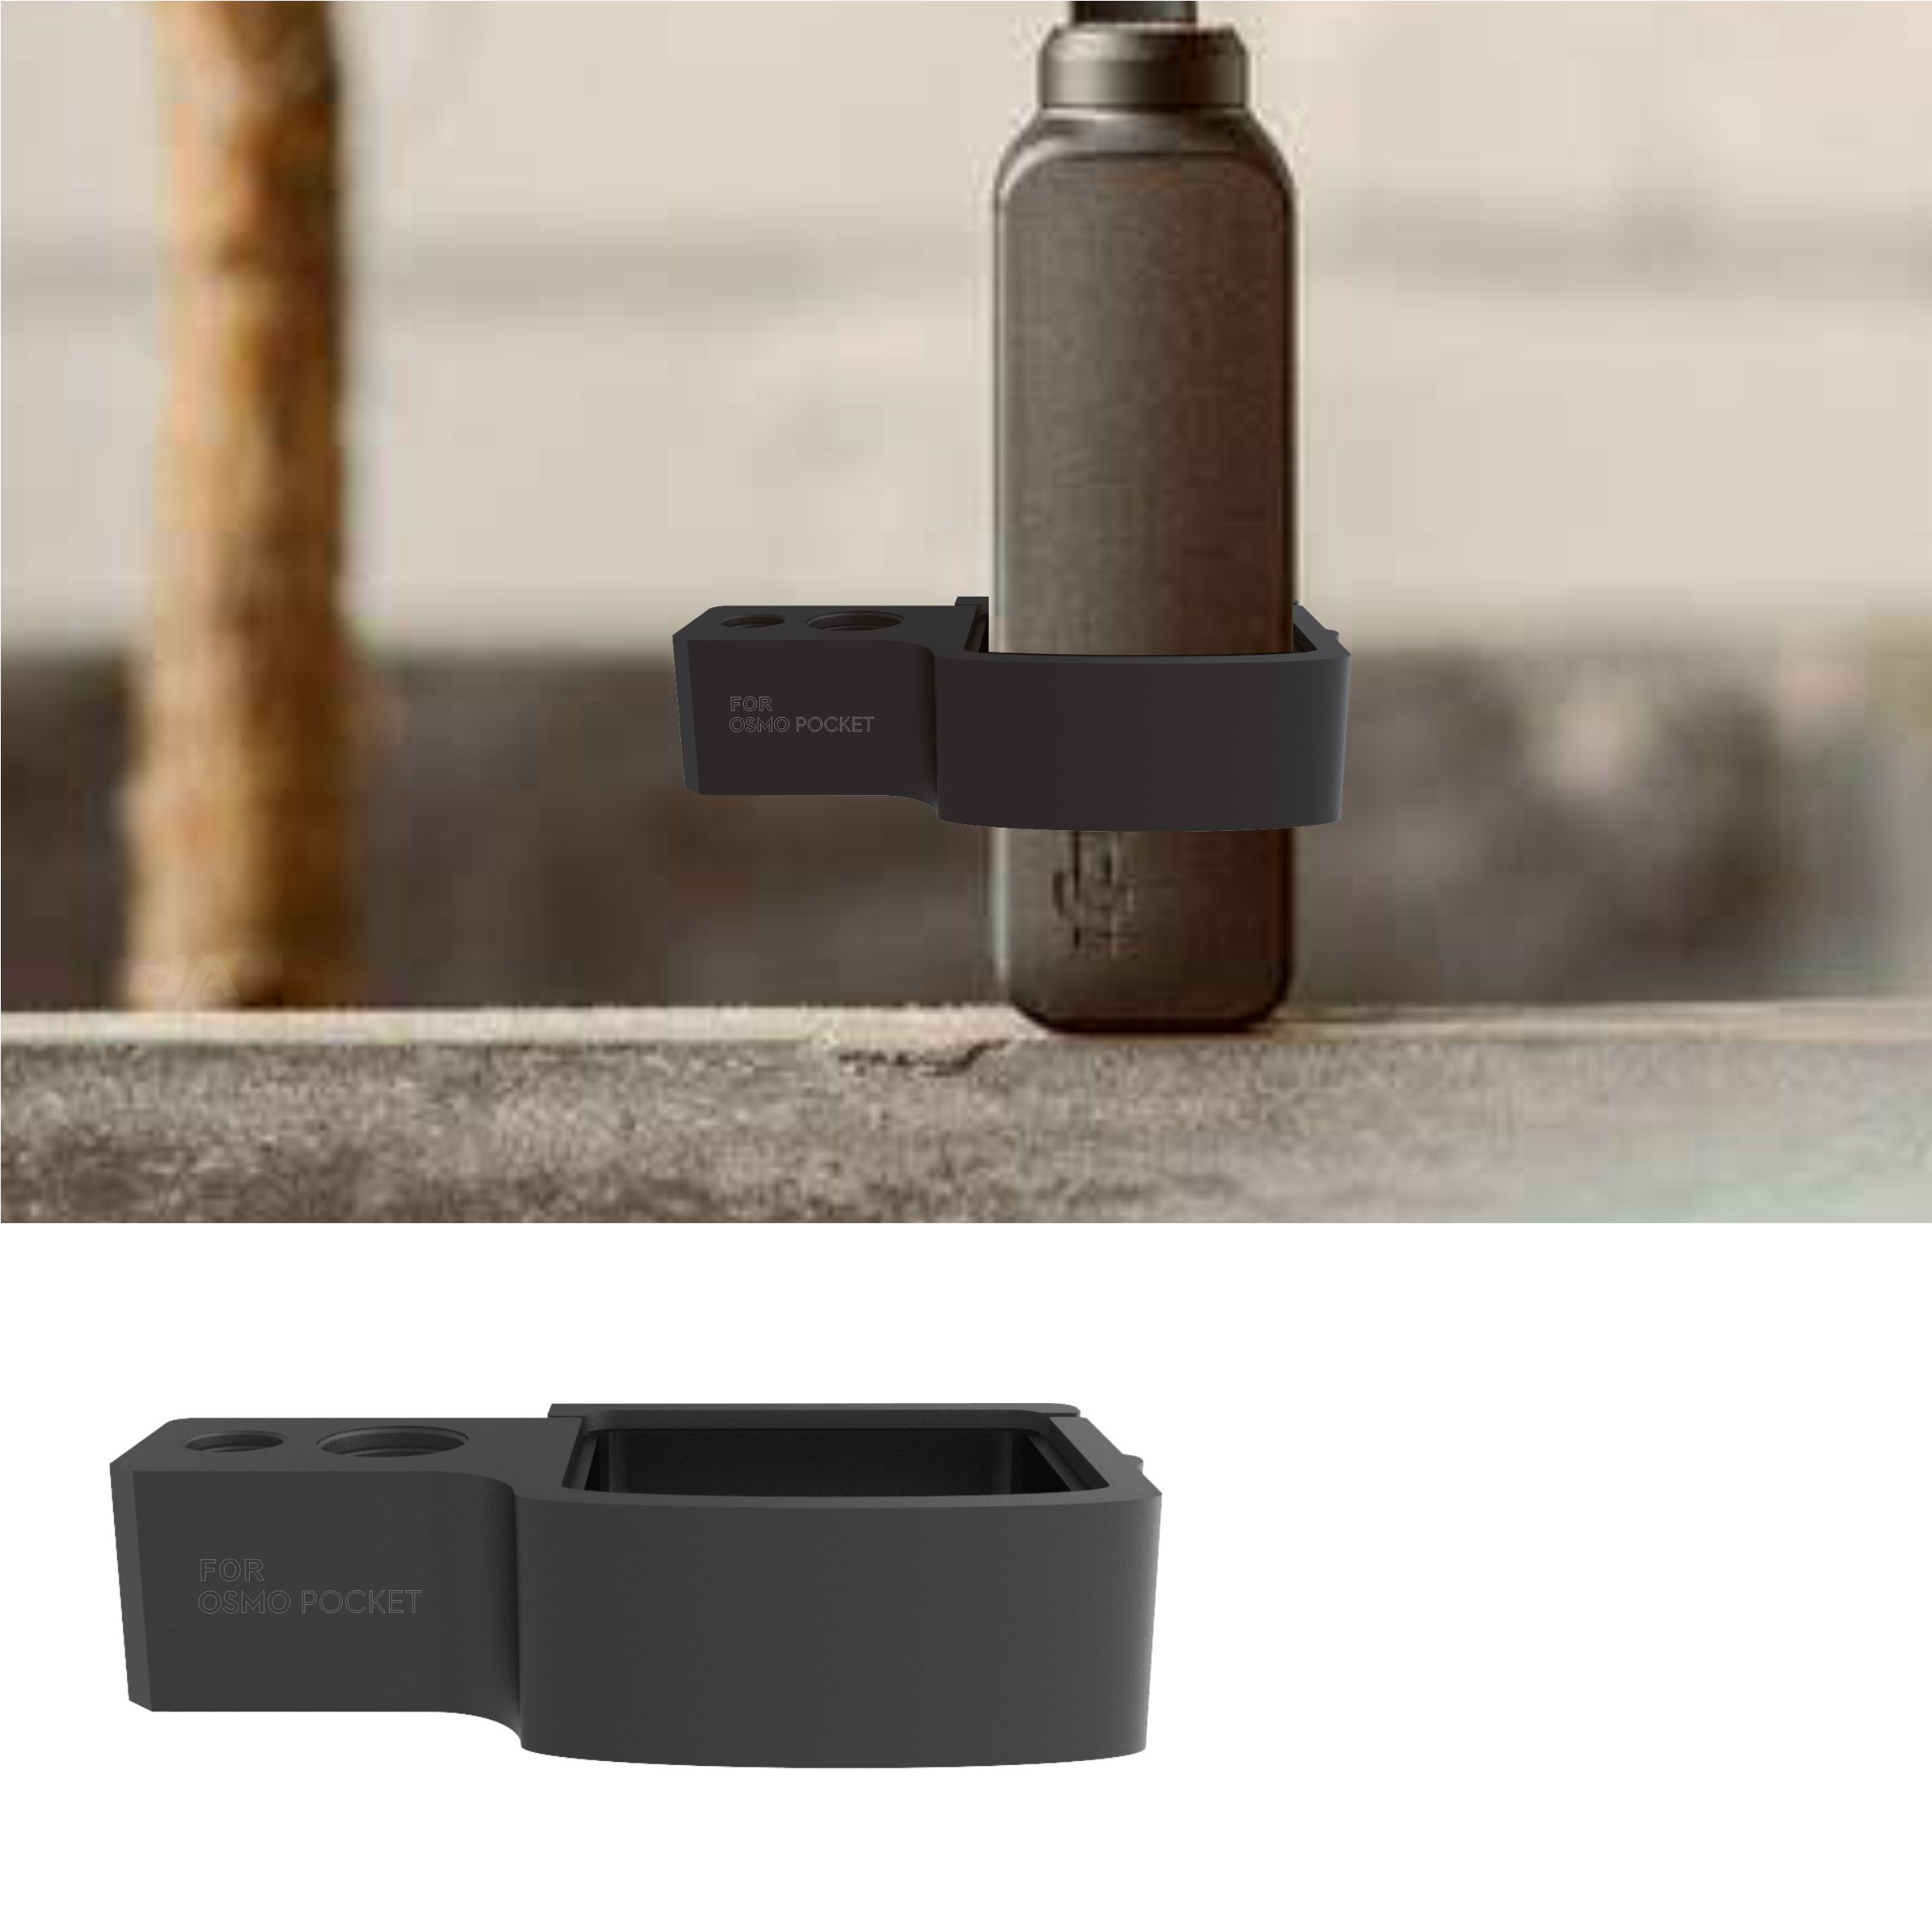 Quick-release DJI Osmo Pocket Gimbal Camera CNC Extension Module Connection DJI OSMO POCKET Expansion Adapter block Accessories 4